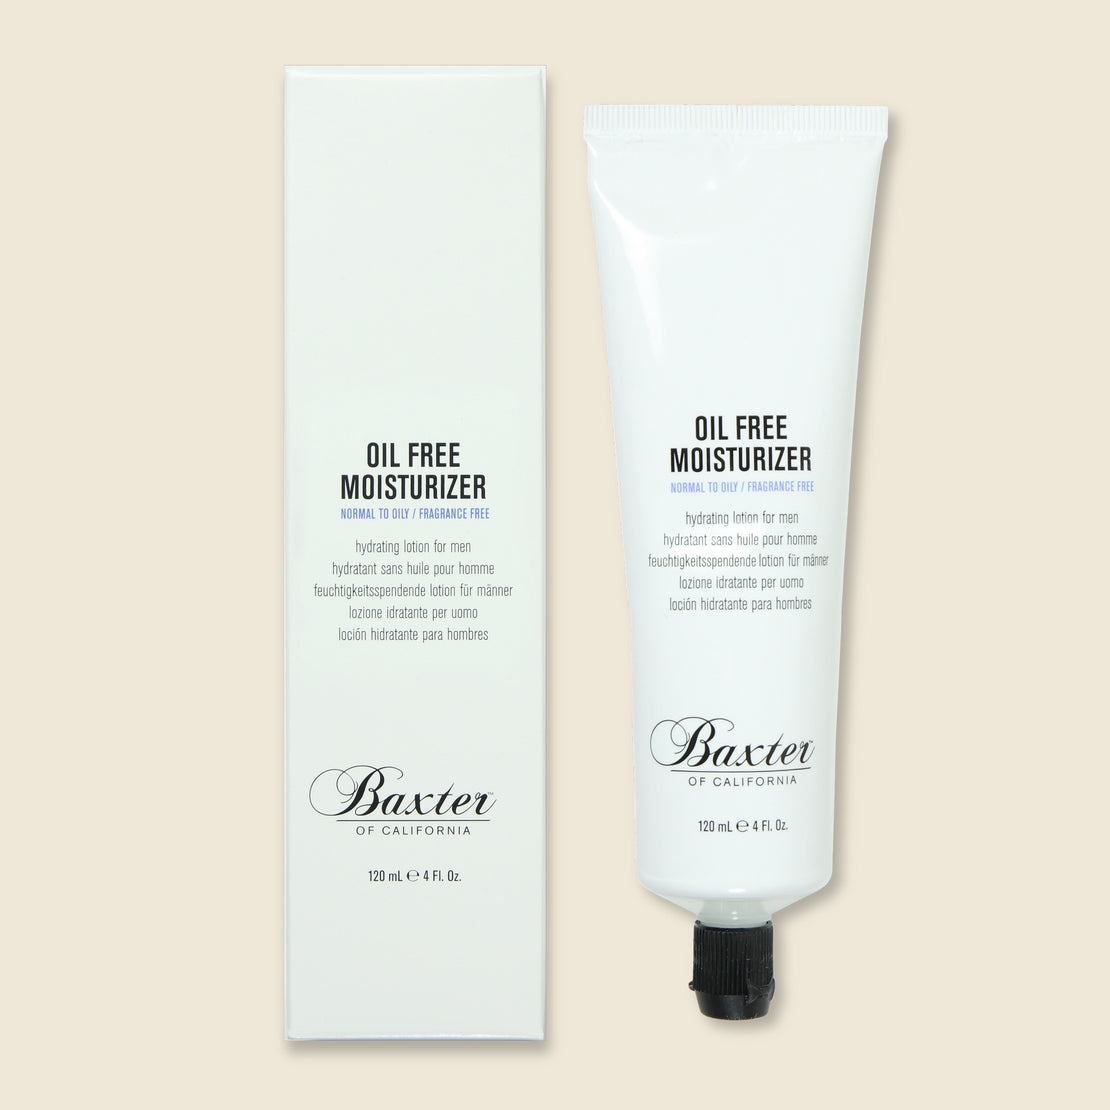 Oil Free Moisturizer - Baxter - STAG Provisions - Chemist - Face Moisturizer